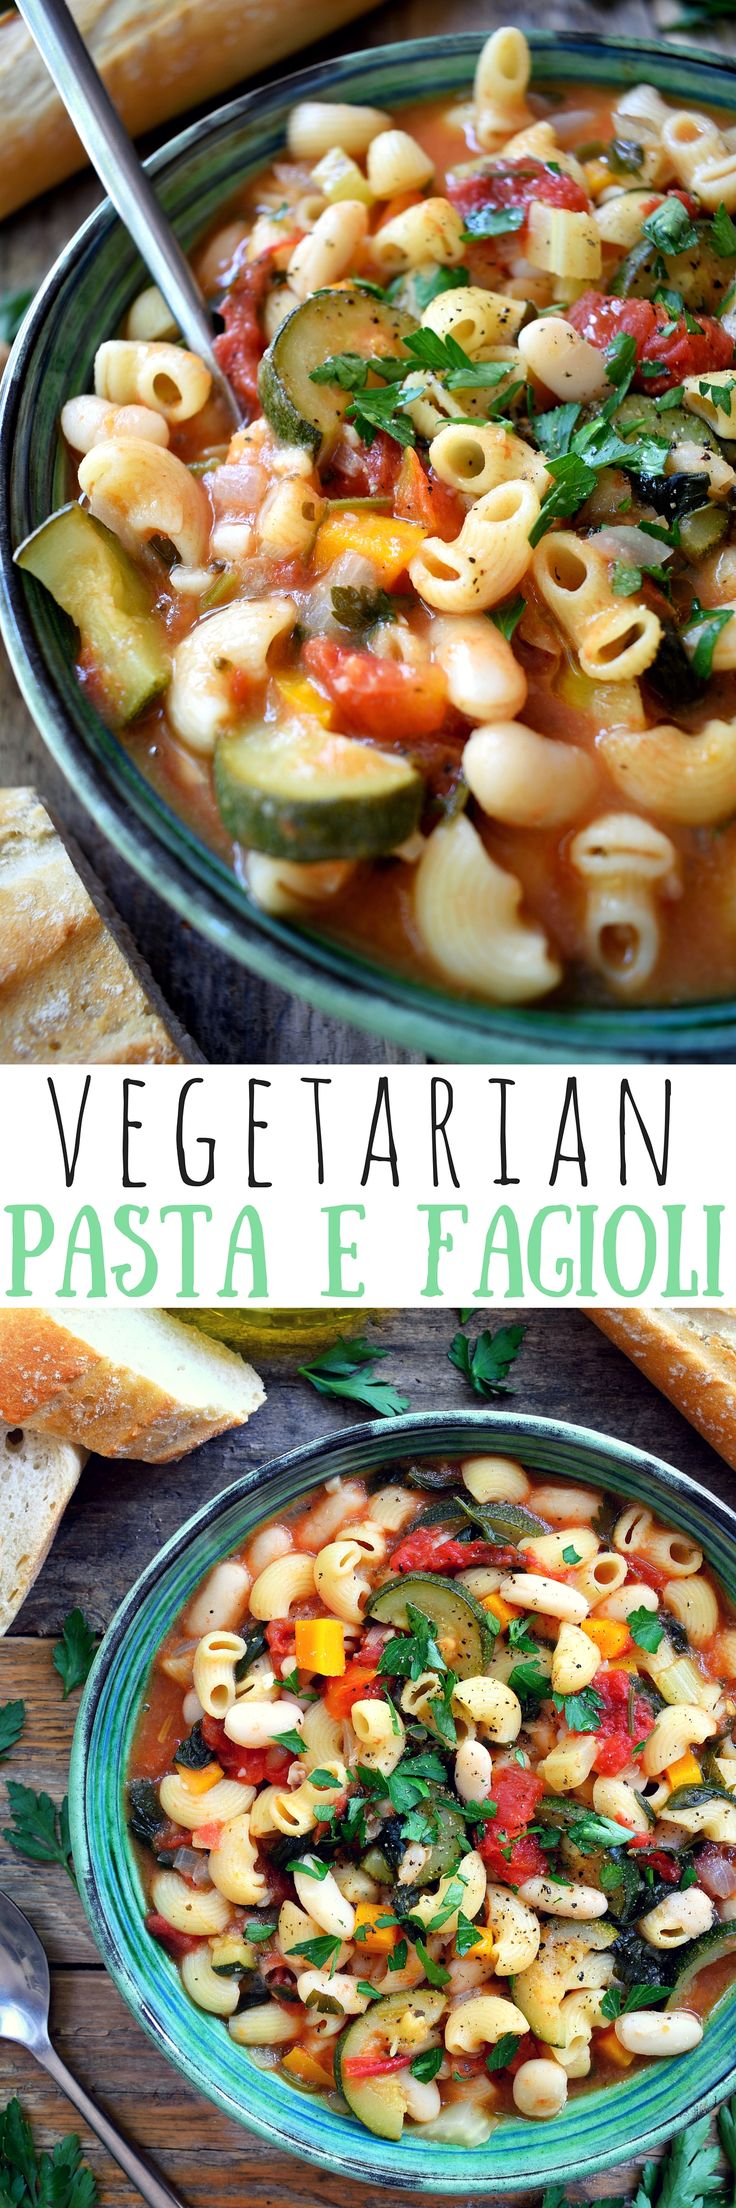 Vegetarian pasta fagioli is a simple, rustic Italian bean and pasta soup that's extremely easy to make and can be on the table in just about 30 minutes. What's fabulous about pasta e fagioli is that it's like two recipes in one – add a bit more stock for a soup and a bit less for a pasta dish! Vegetarian / vegan.